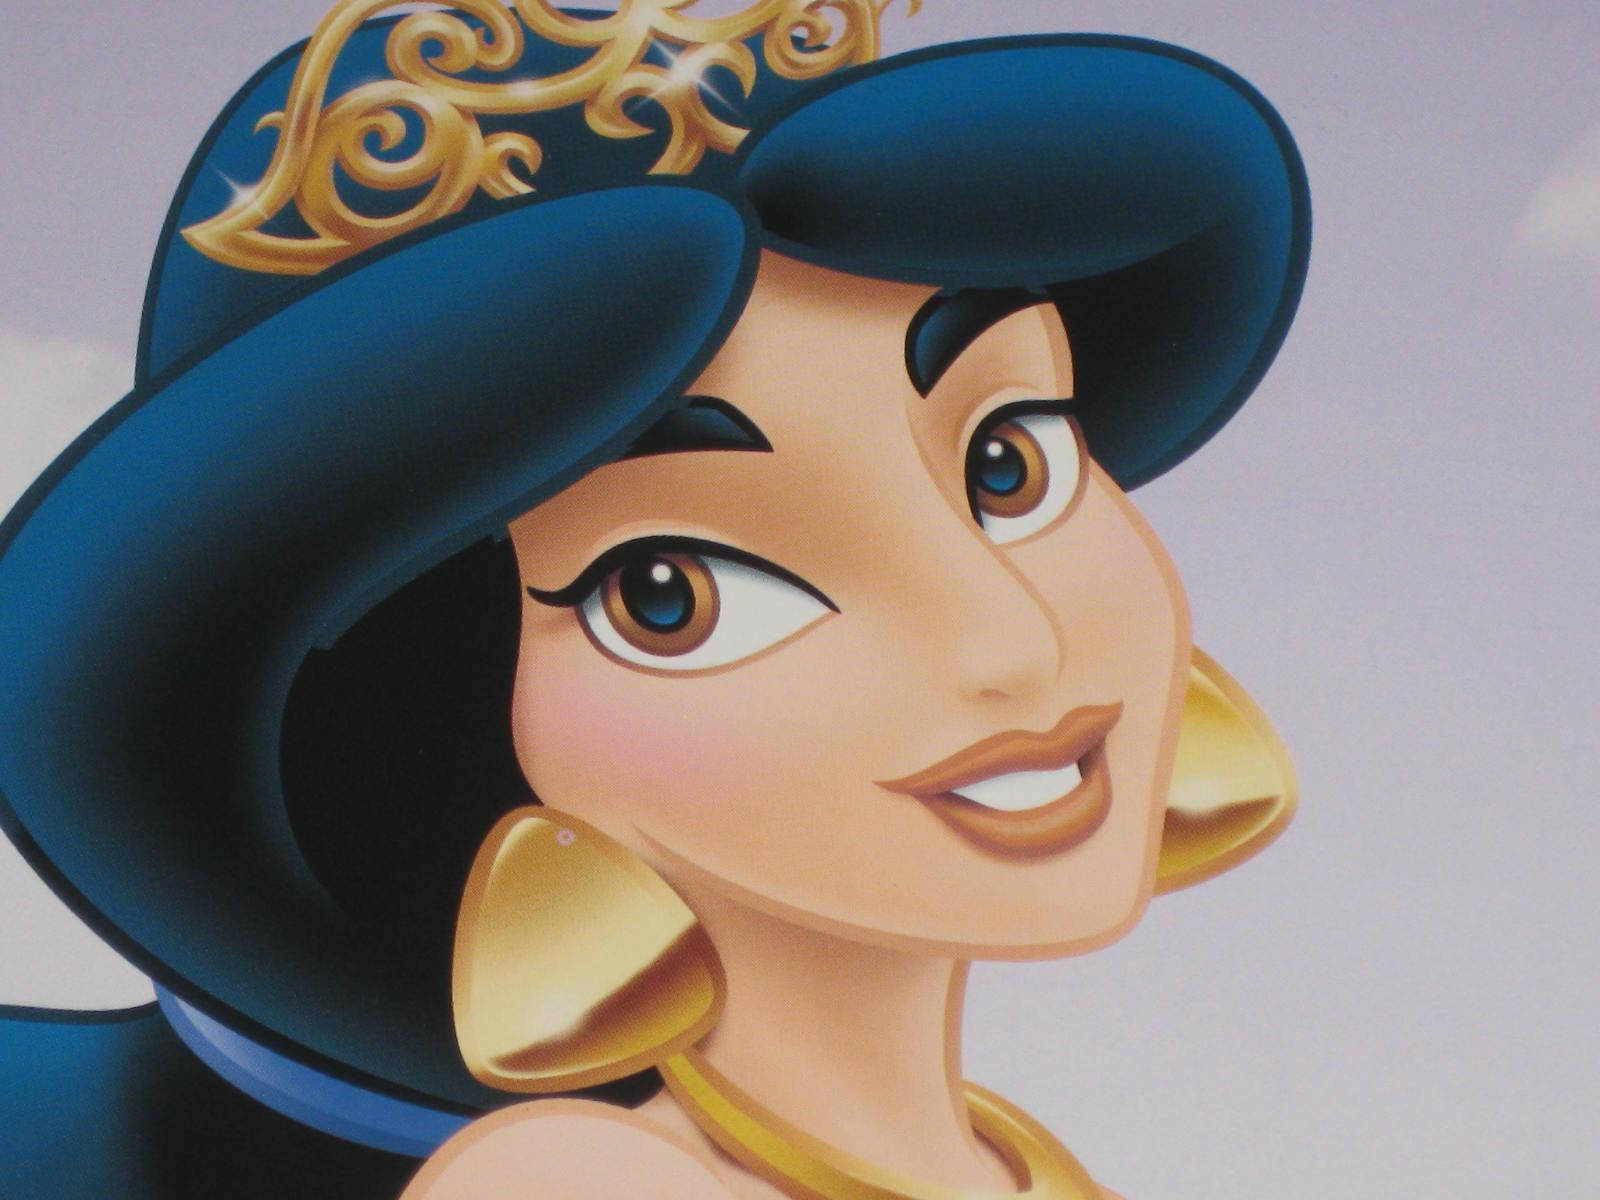 I picked Jasmine from Aladdin